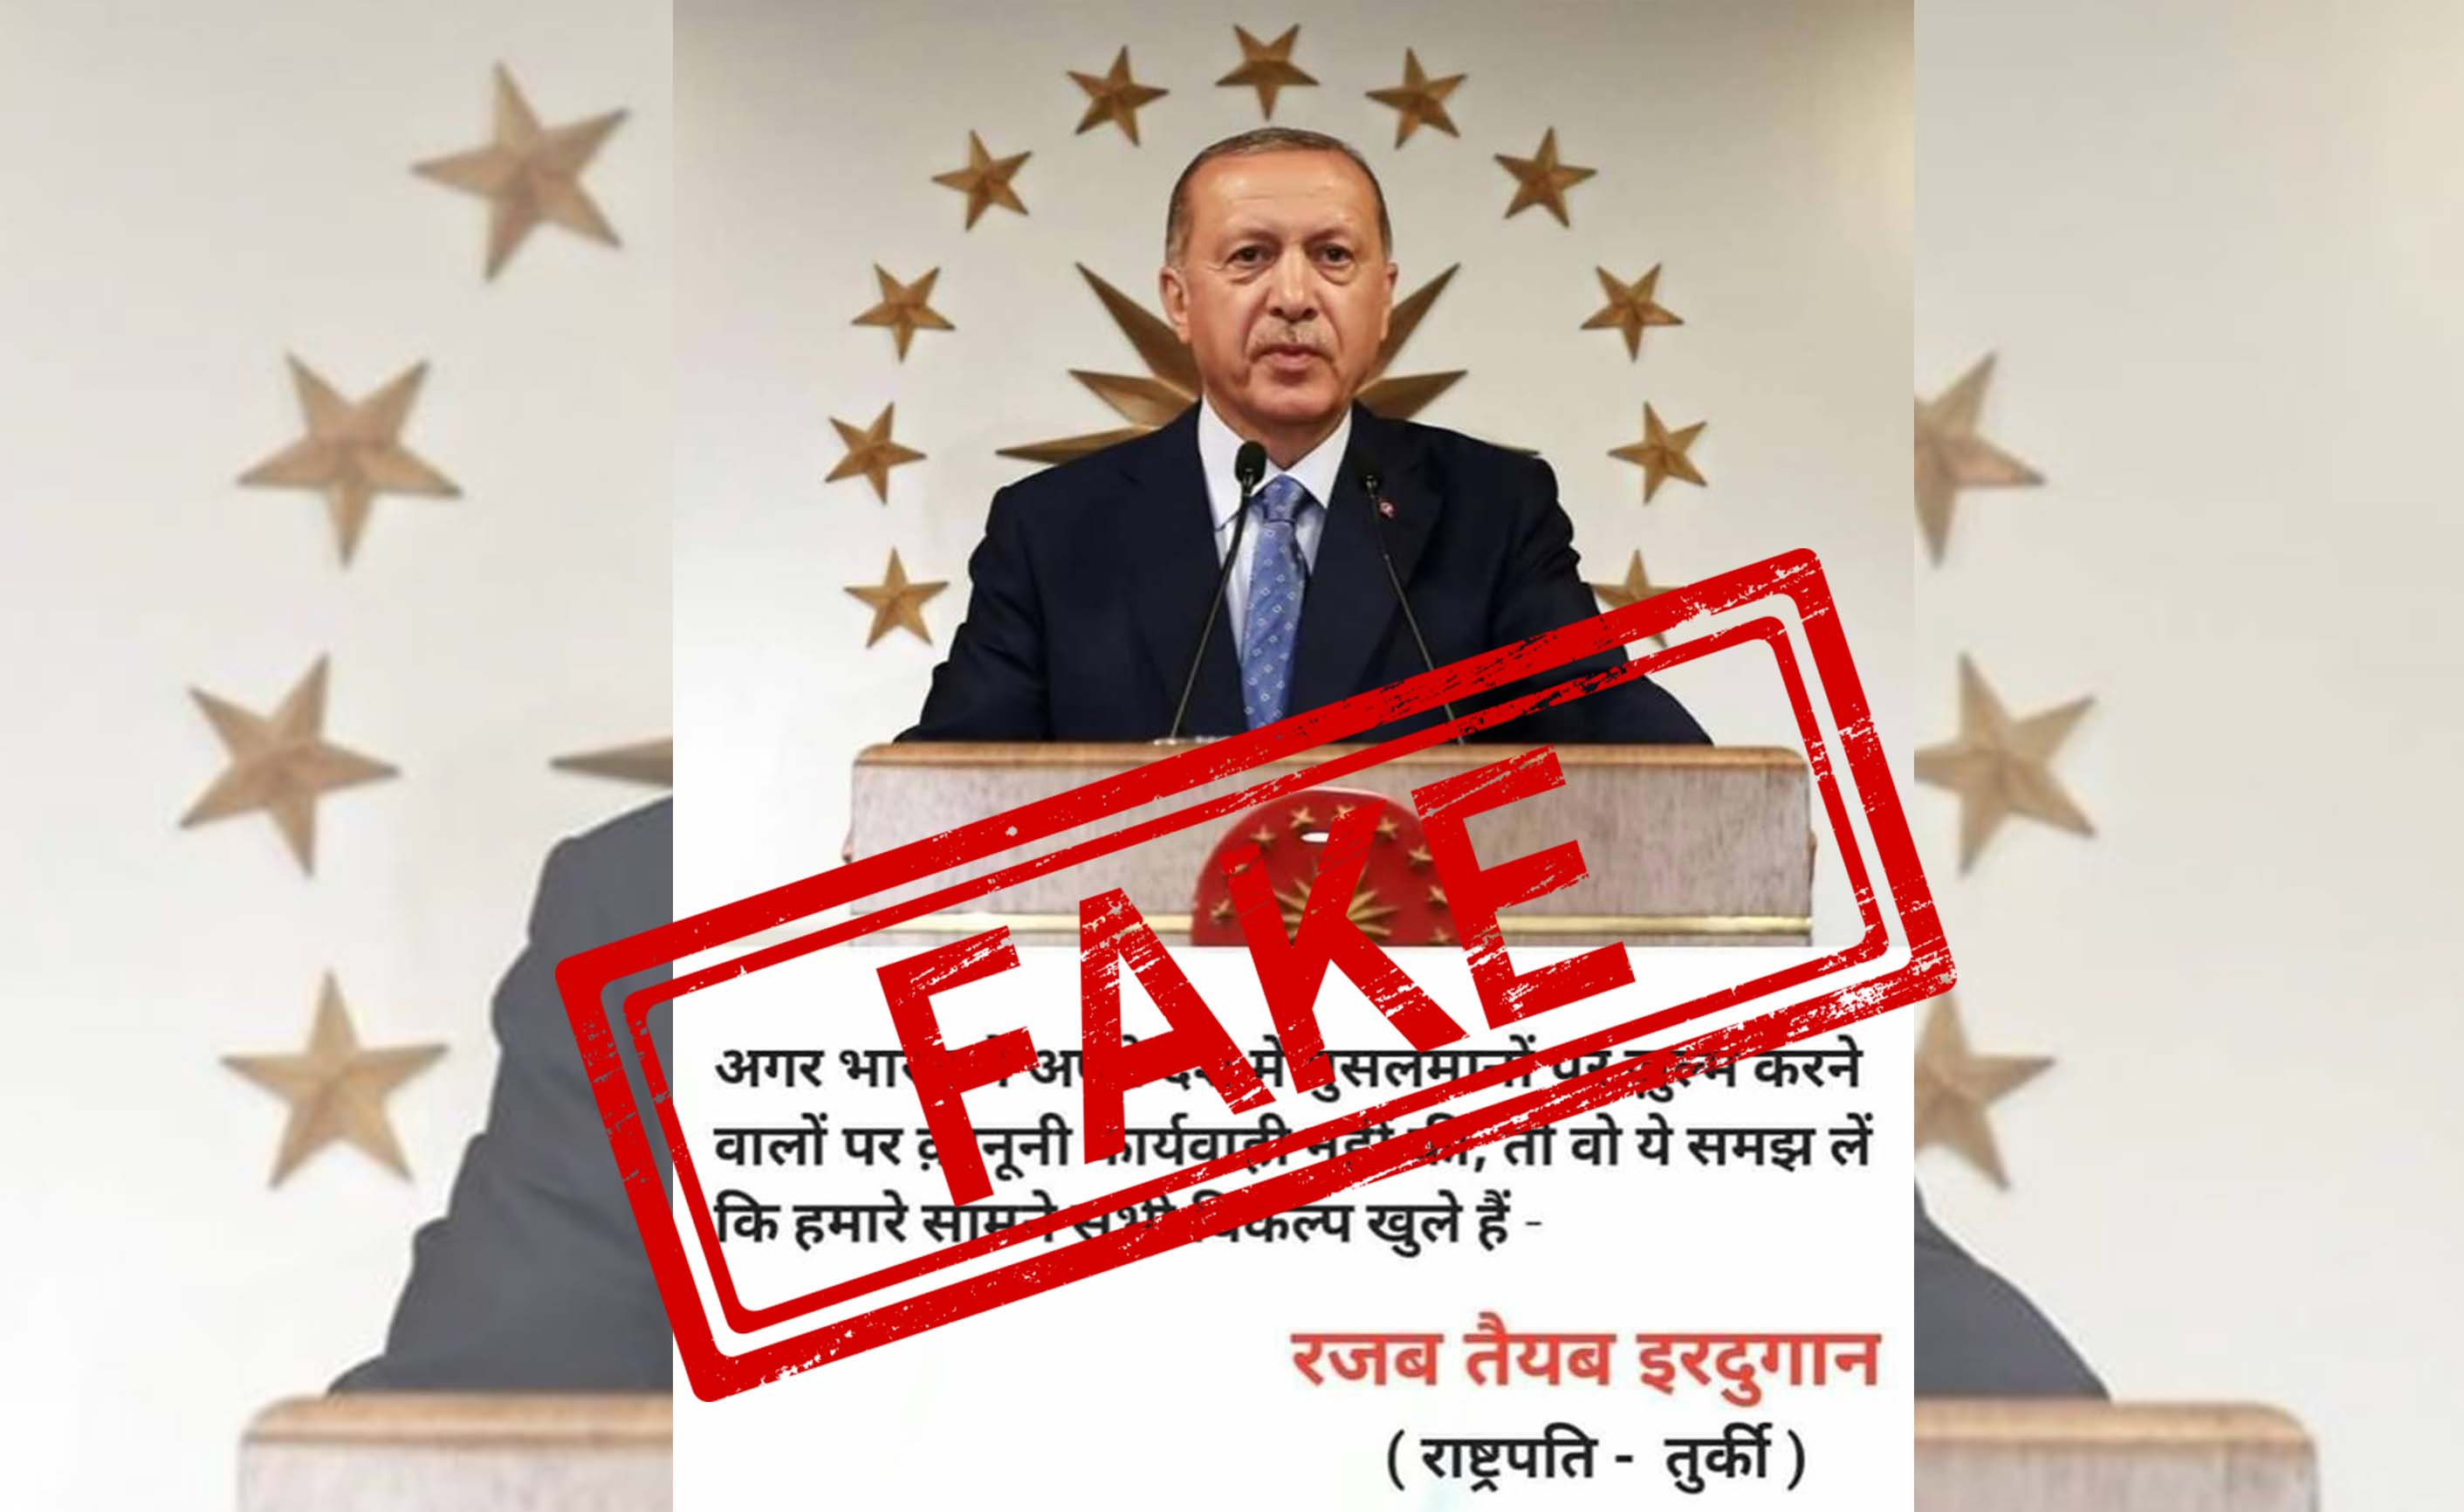 Turkey, President, Recep Tayyip Erdoğan, Muslims, India, People, NewsMobile, Mobile, news, India, Fact Check, Fact Checker, Fake, news